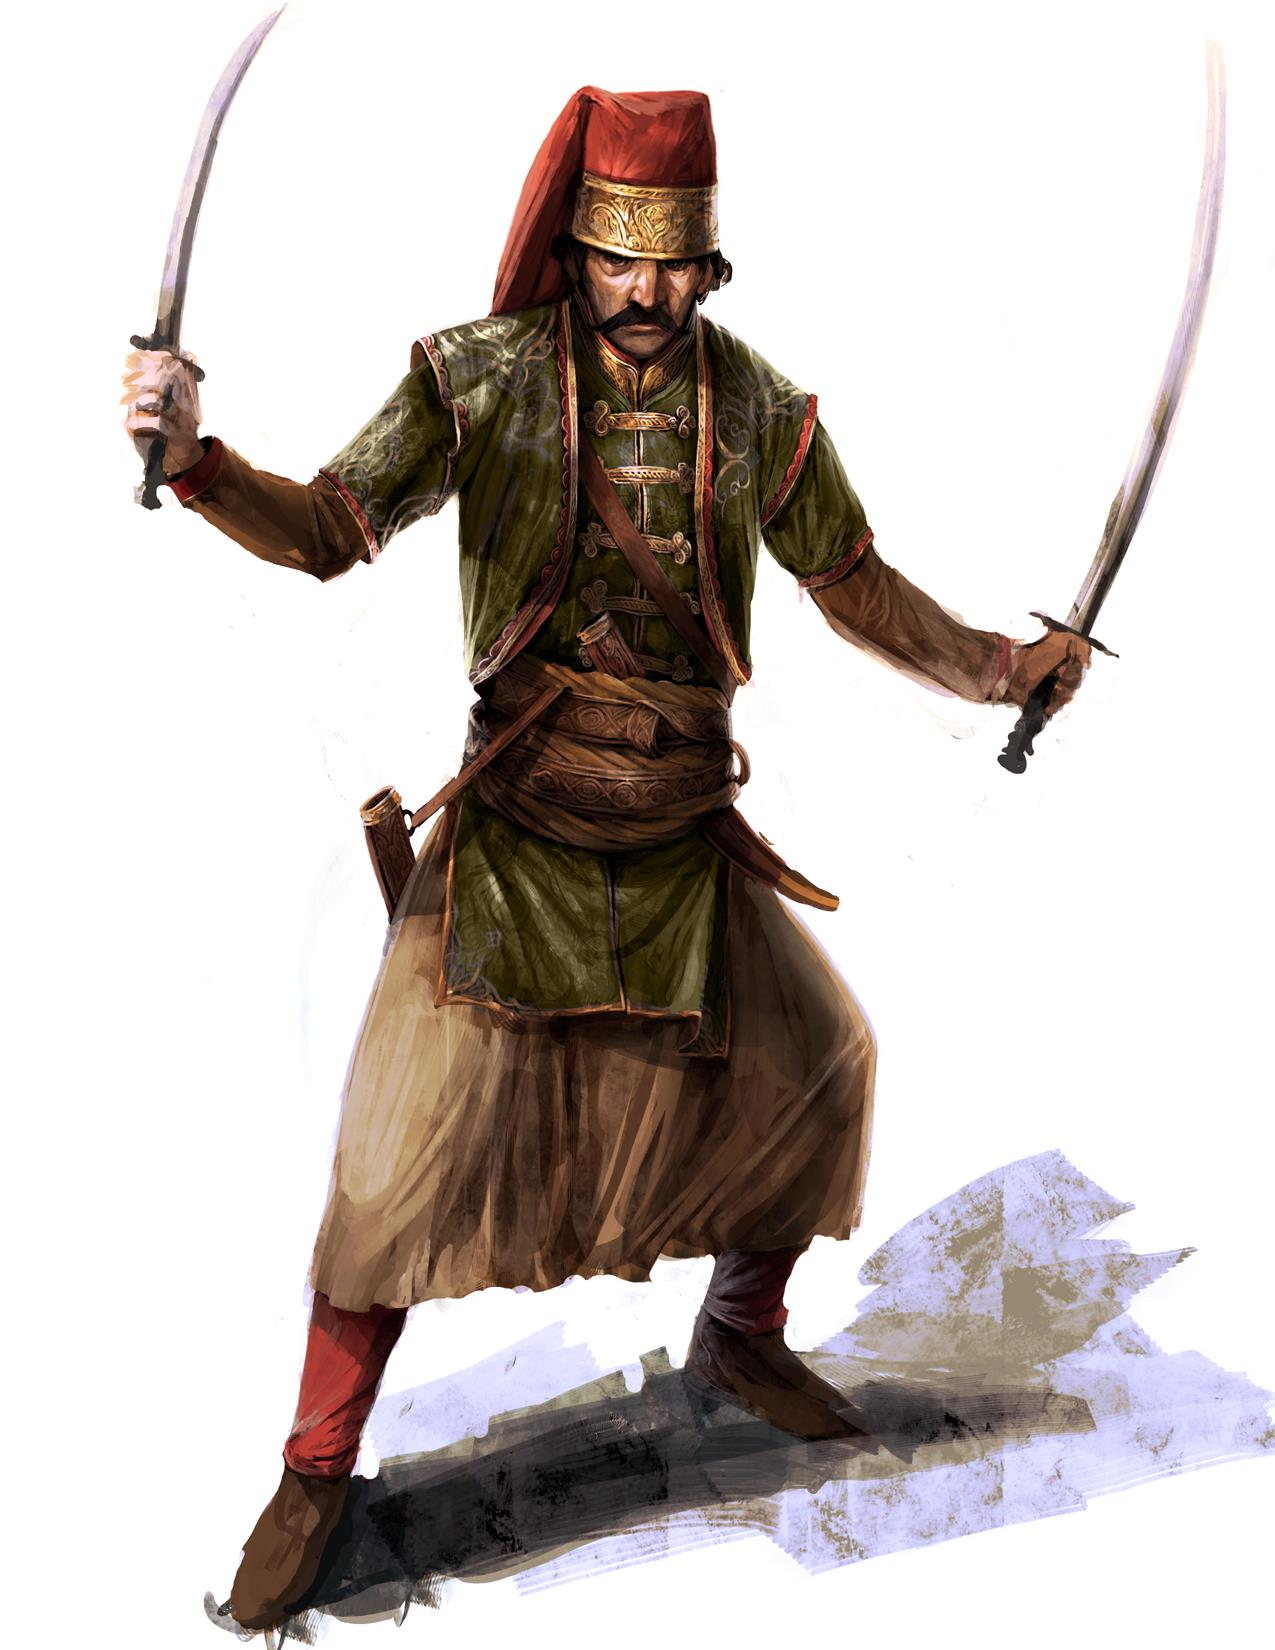 Image agile ottoman fighter the assassin 39 s creed wiki assassin 39 s creed - Ottoman empire assassins creed ...